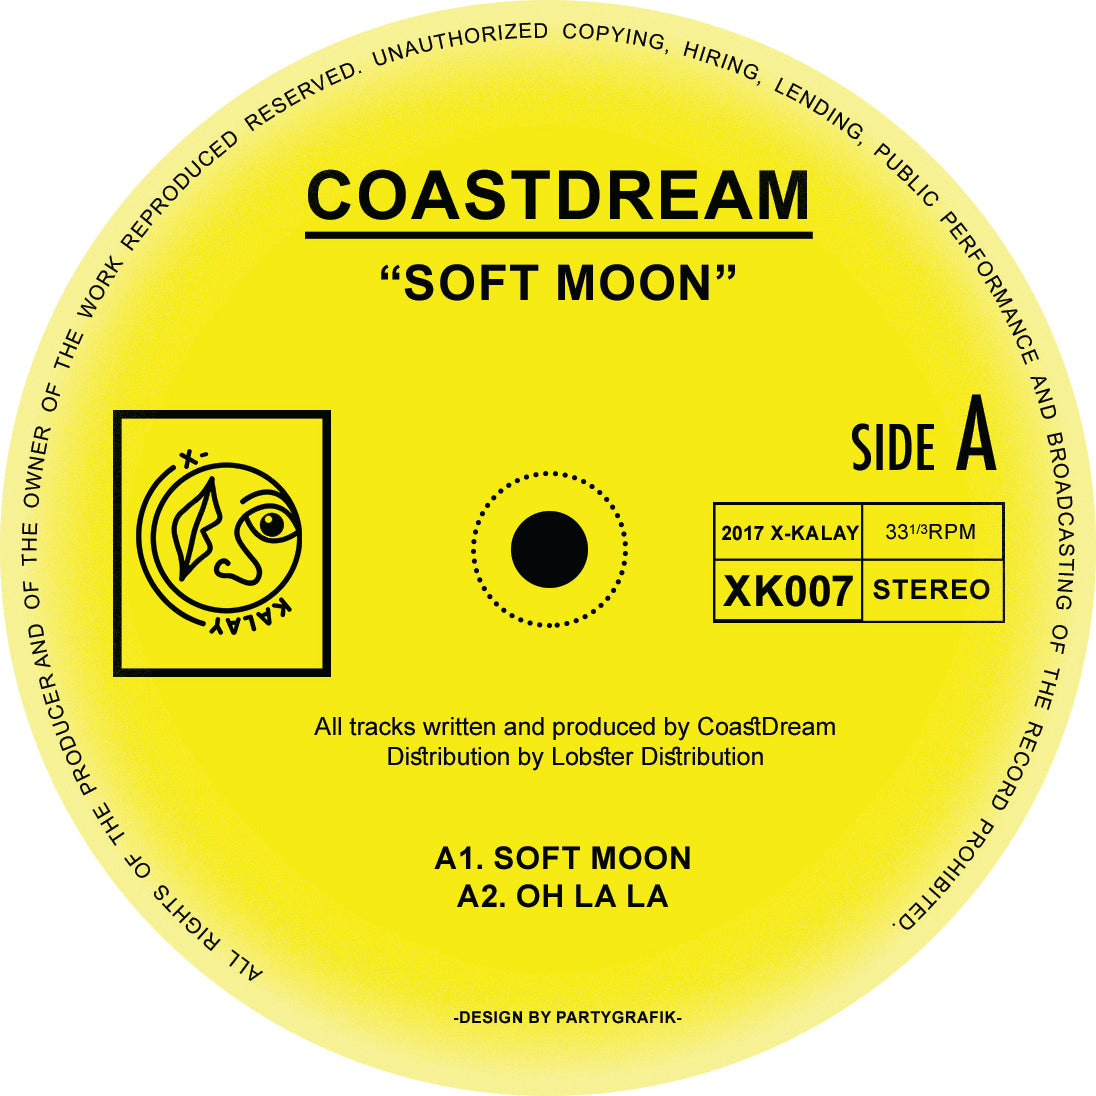 "CoastDream - Soft Moon 12"" - Vinylhouse"